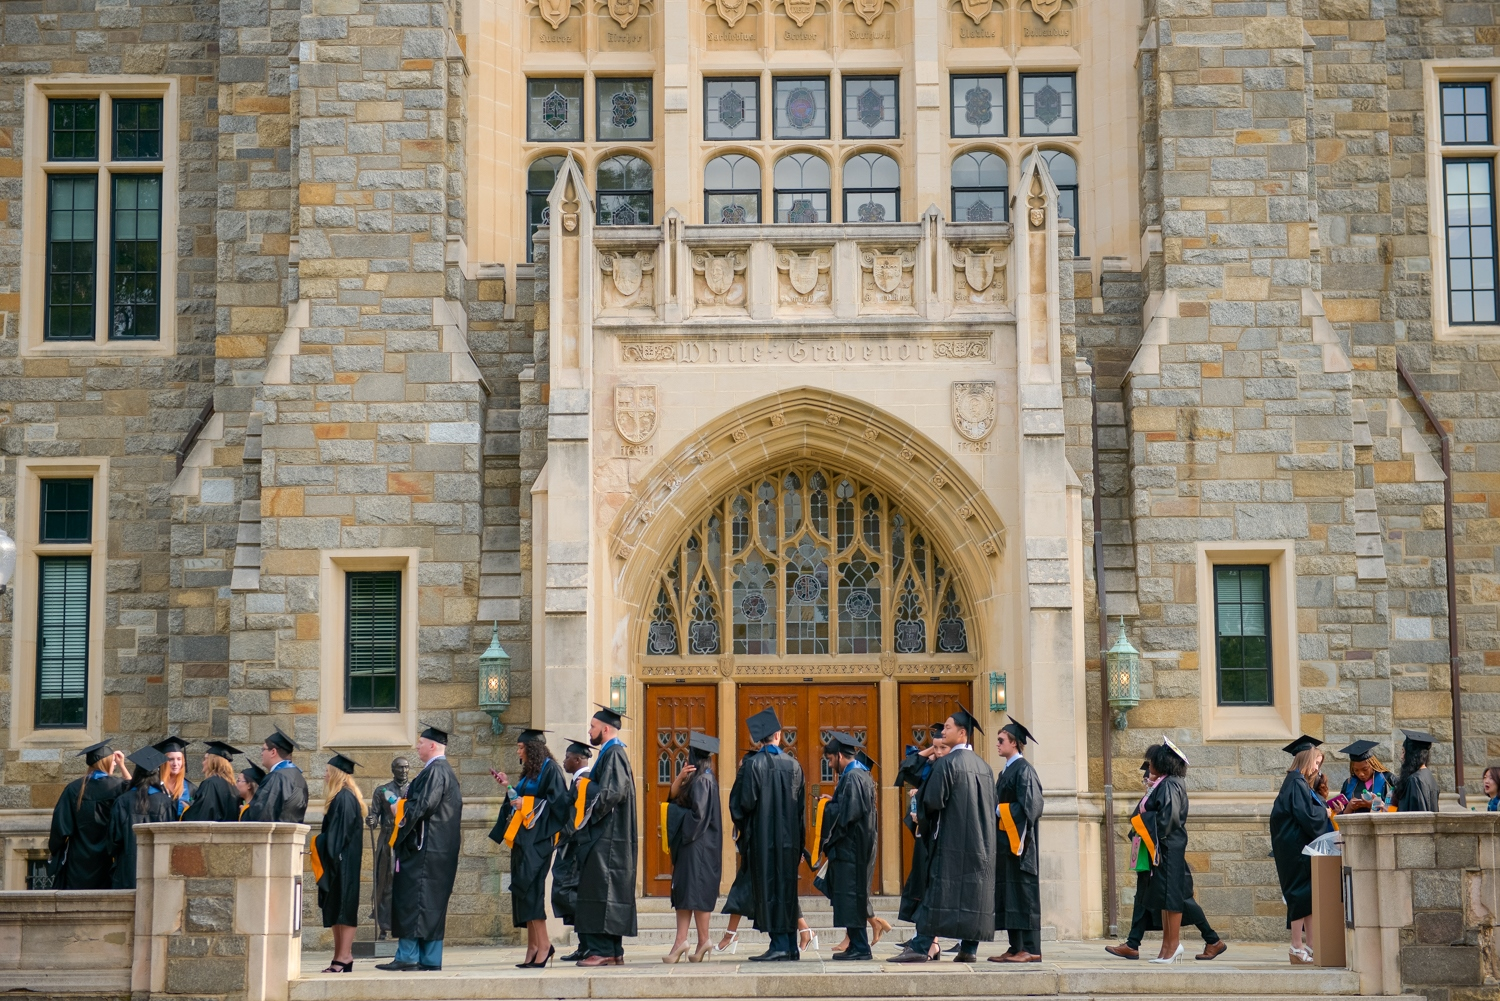 graduate students in commencement regalia line up in front of carved stone doorway at White-Gravenor Hall